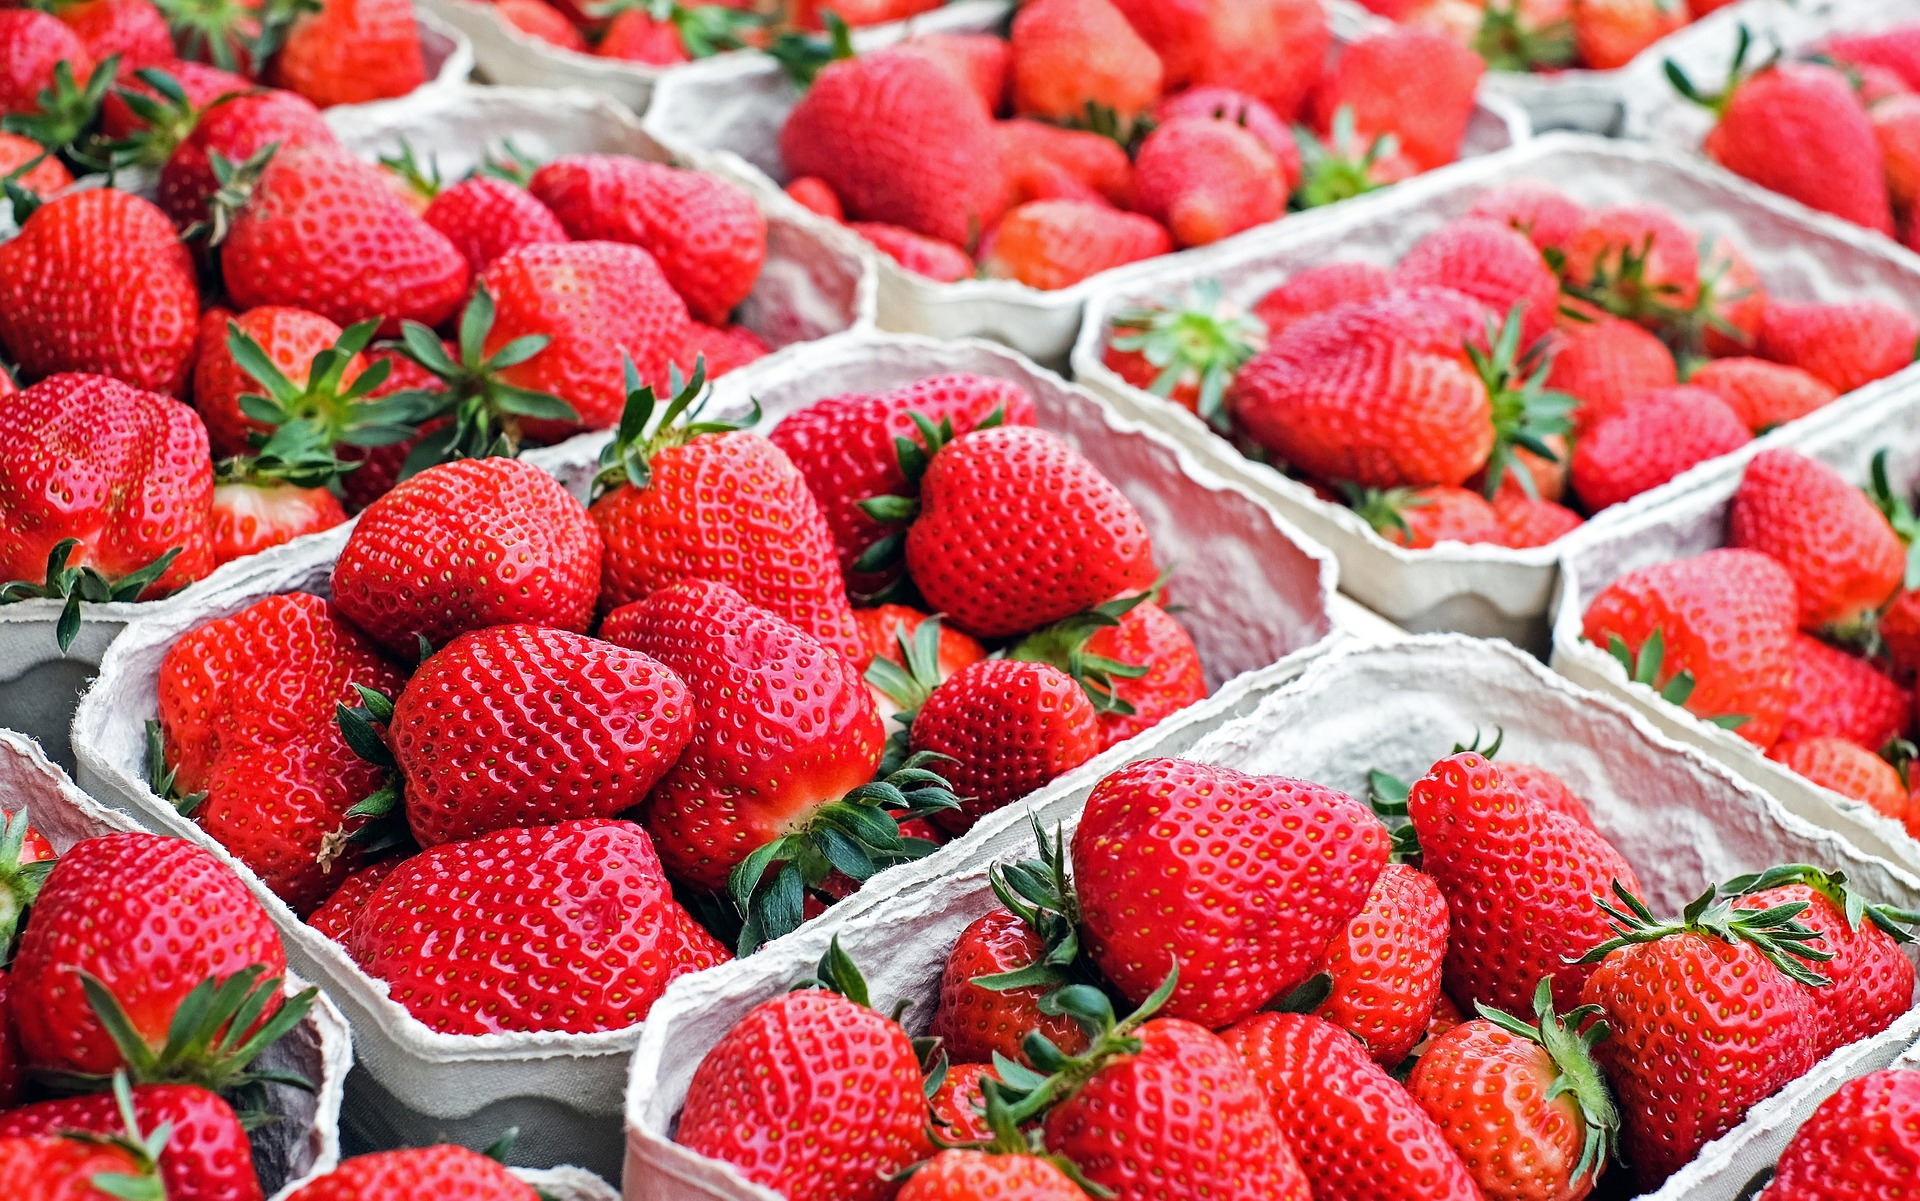 Punnets of bright red strawberries in cardboard containers, bright green leaves and stalks.